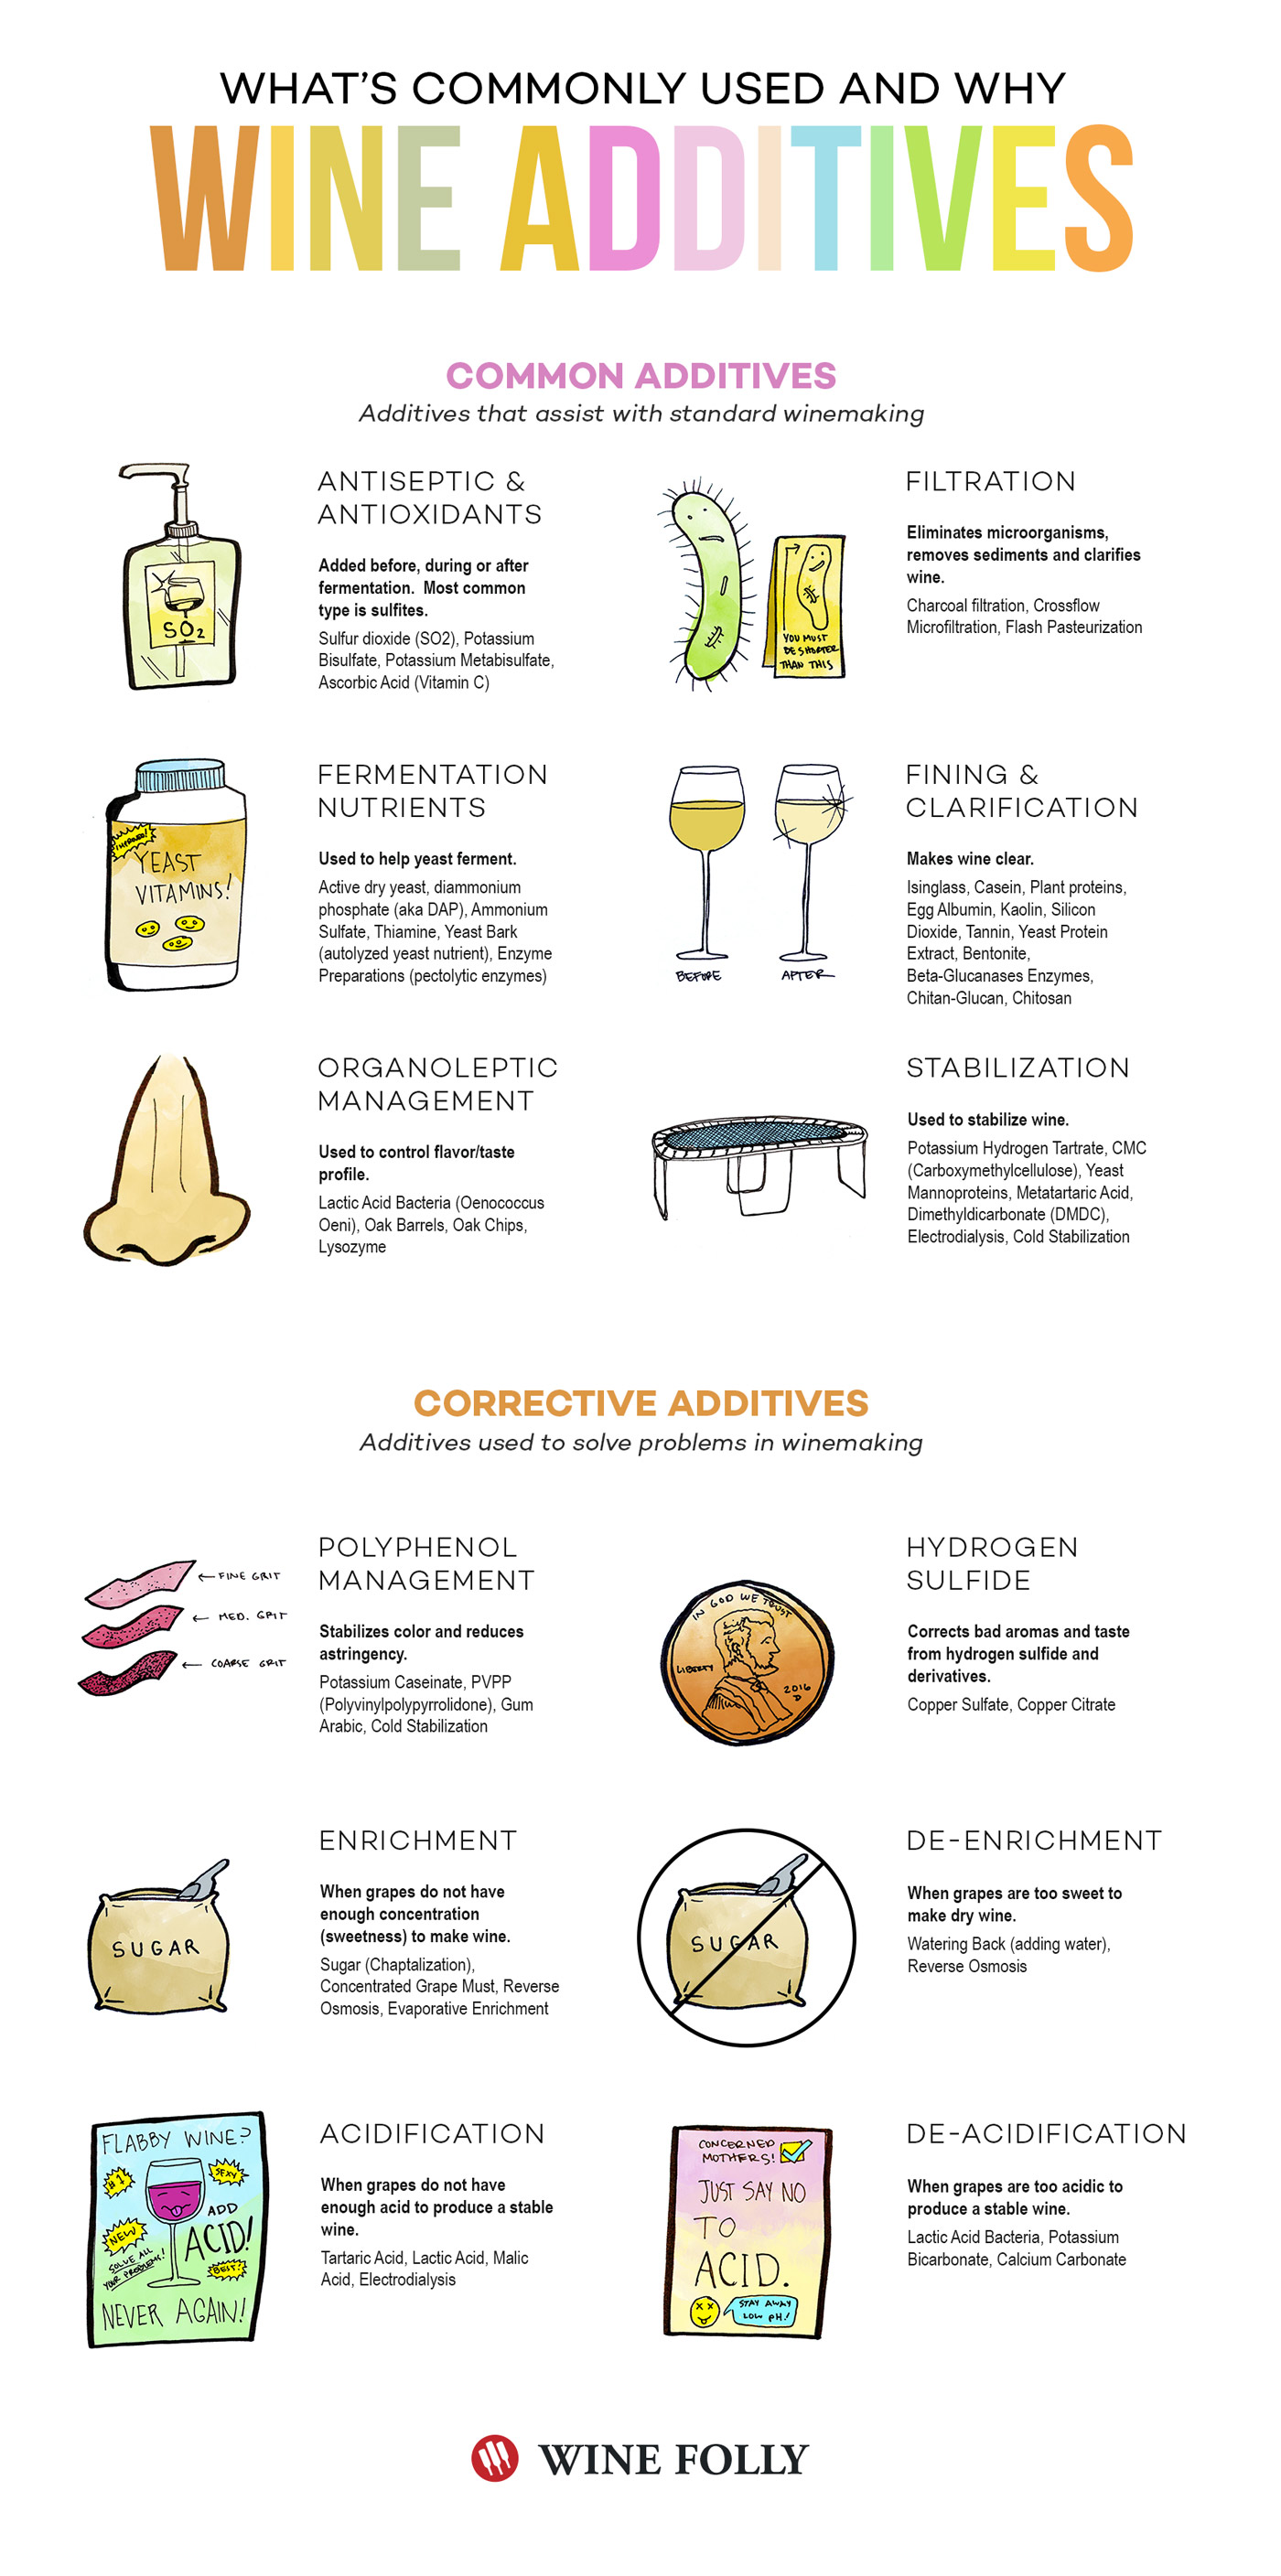 wine-additives-infographic-wine-folly